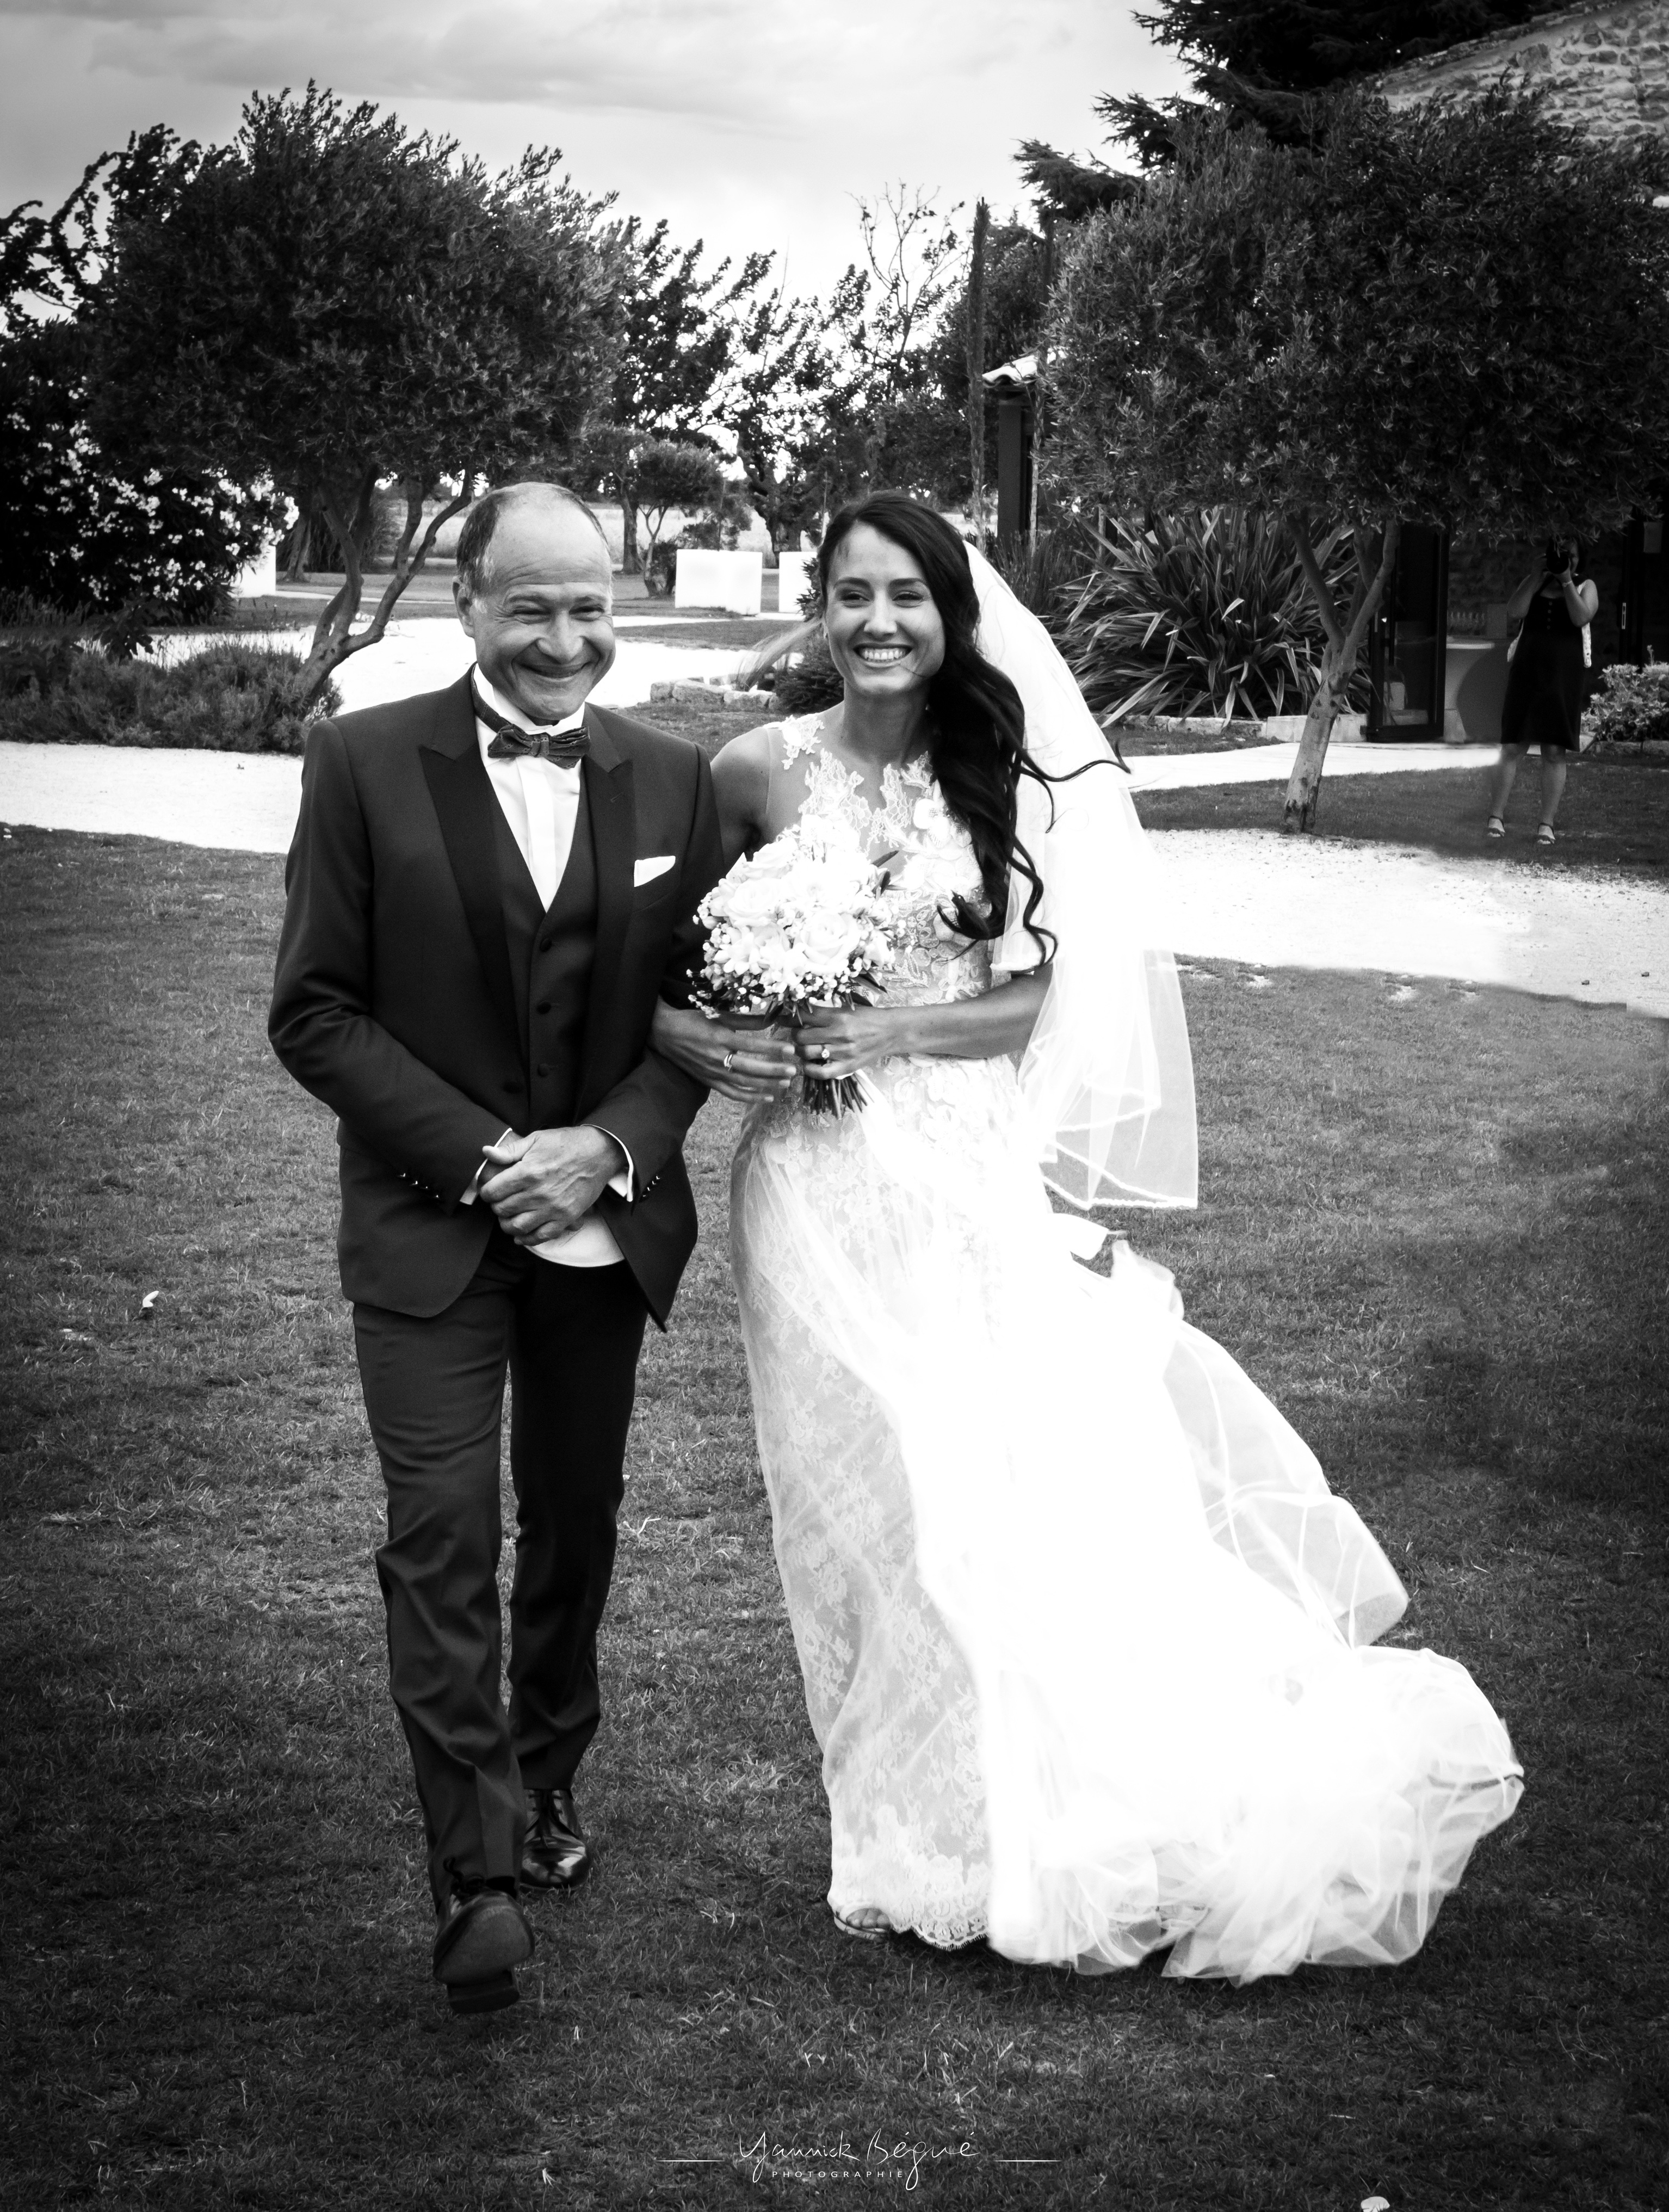 Mariage, Isère